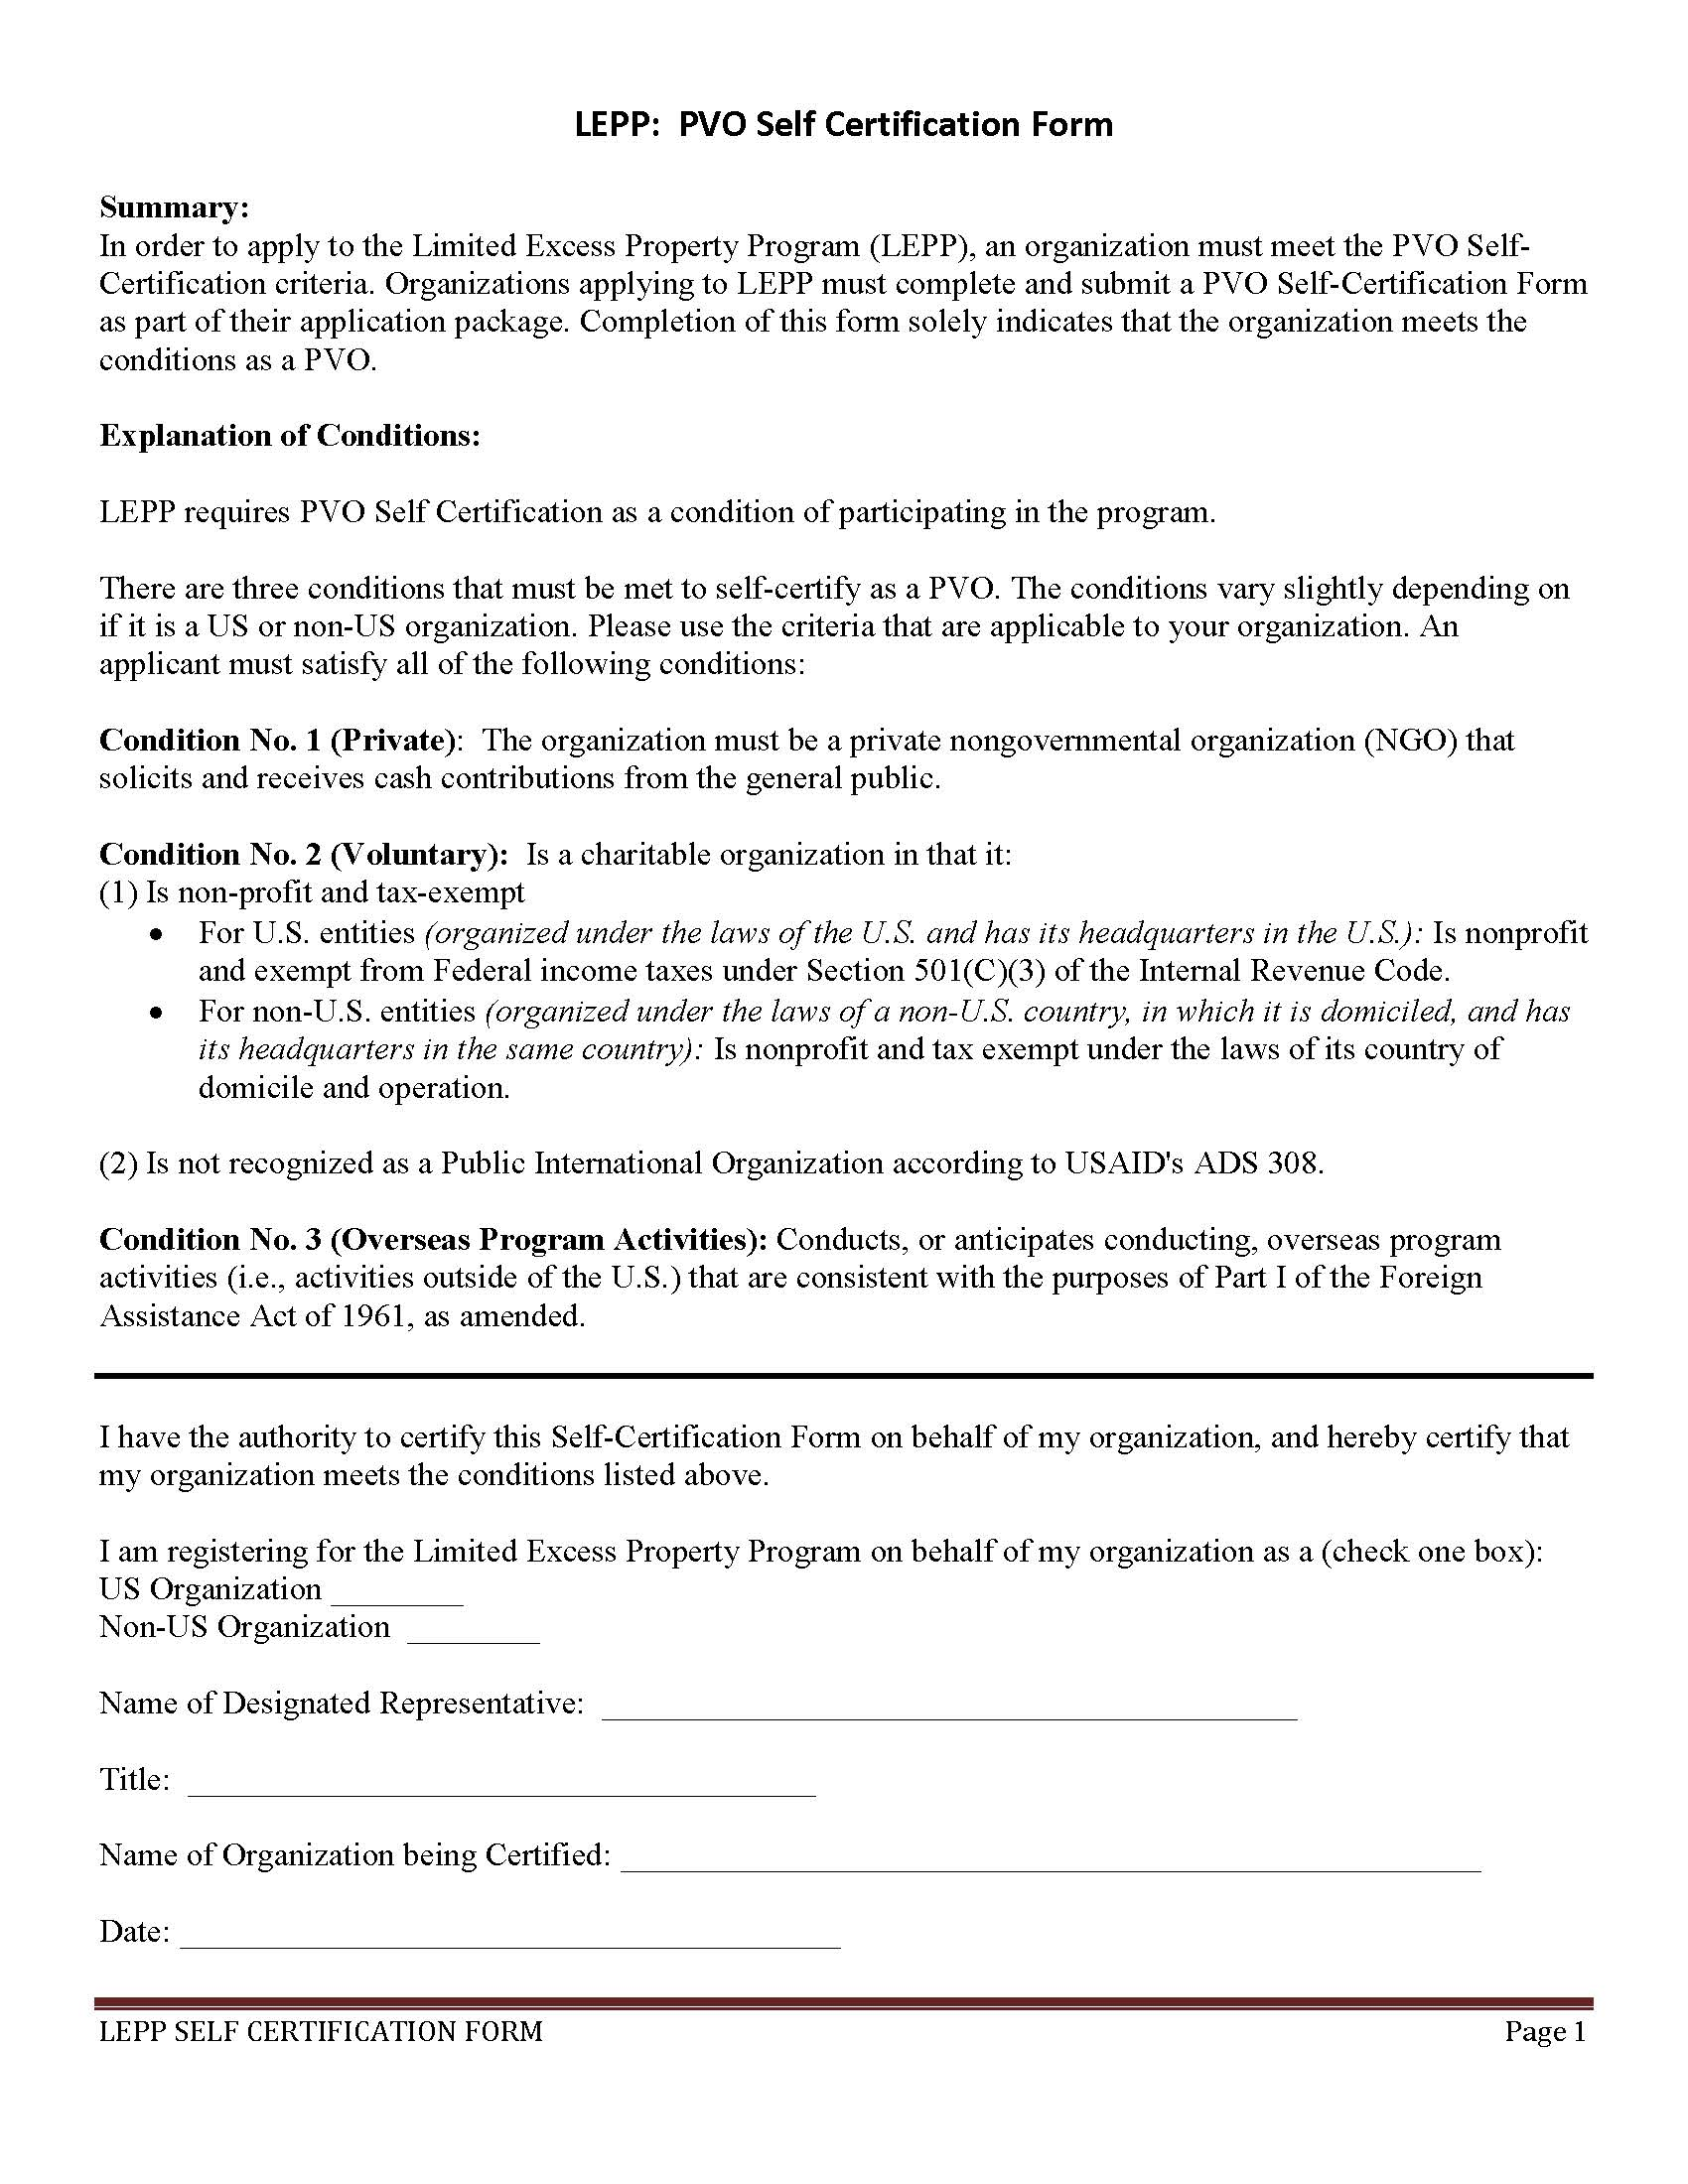 PVO Self-Certification Form